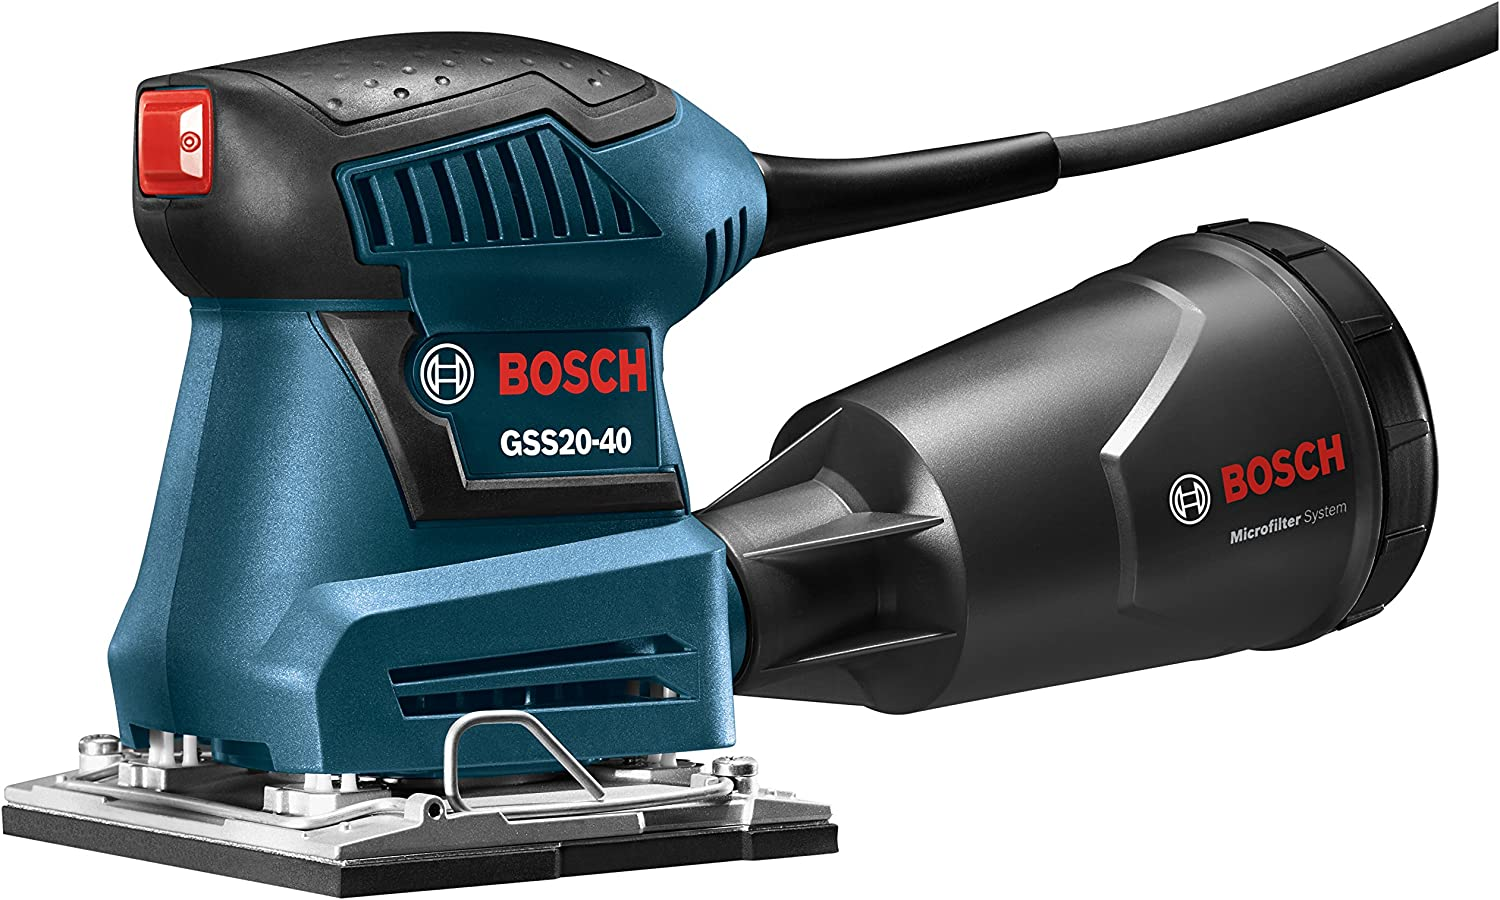 Bosch GSS20-40 featured image